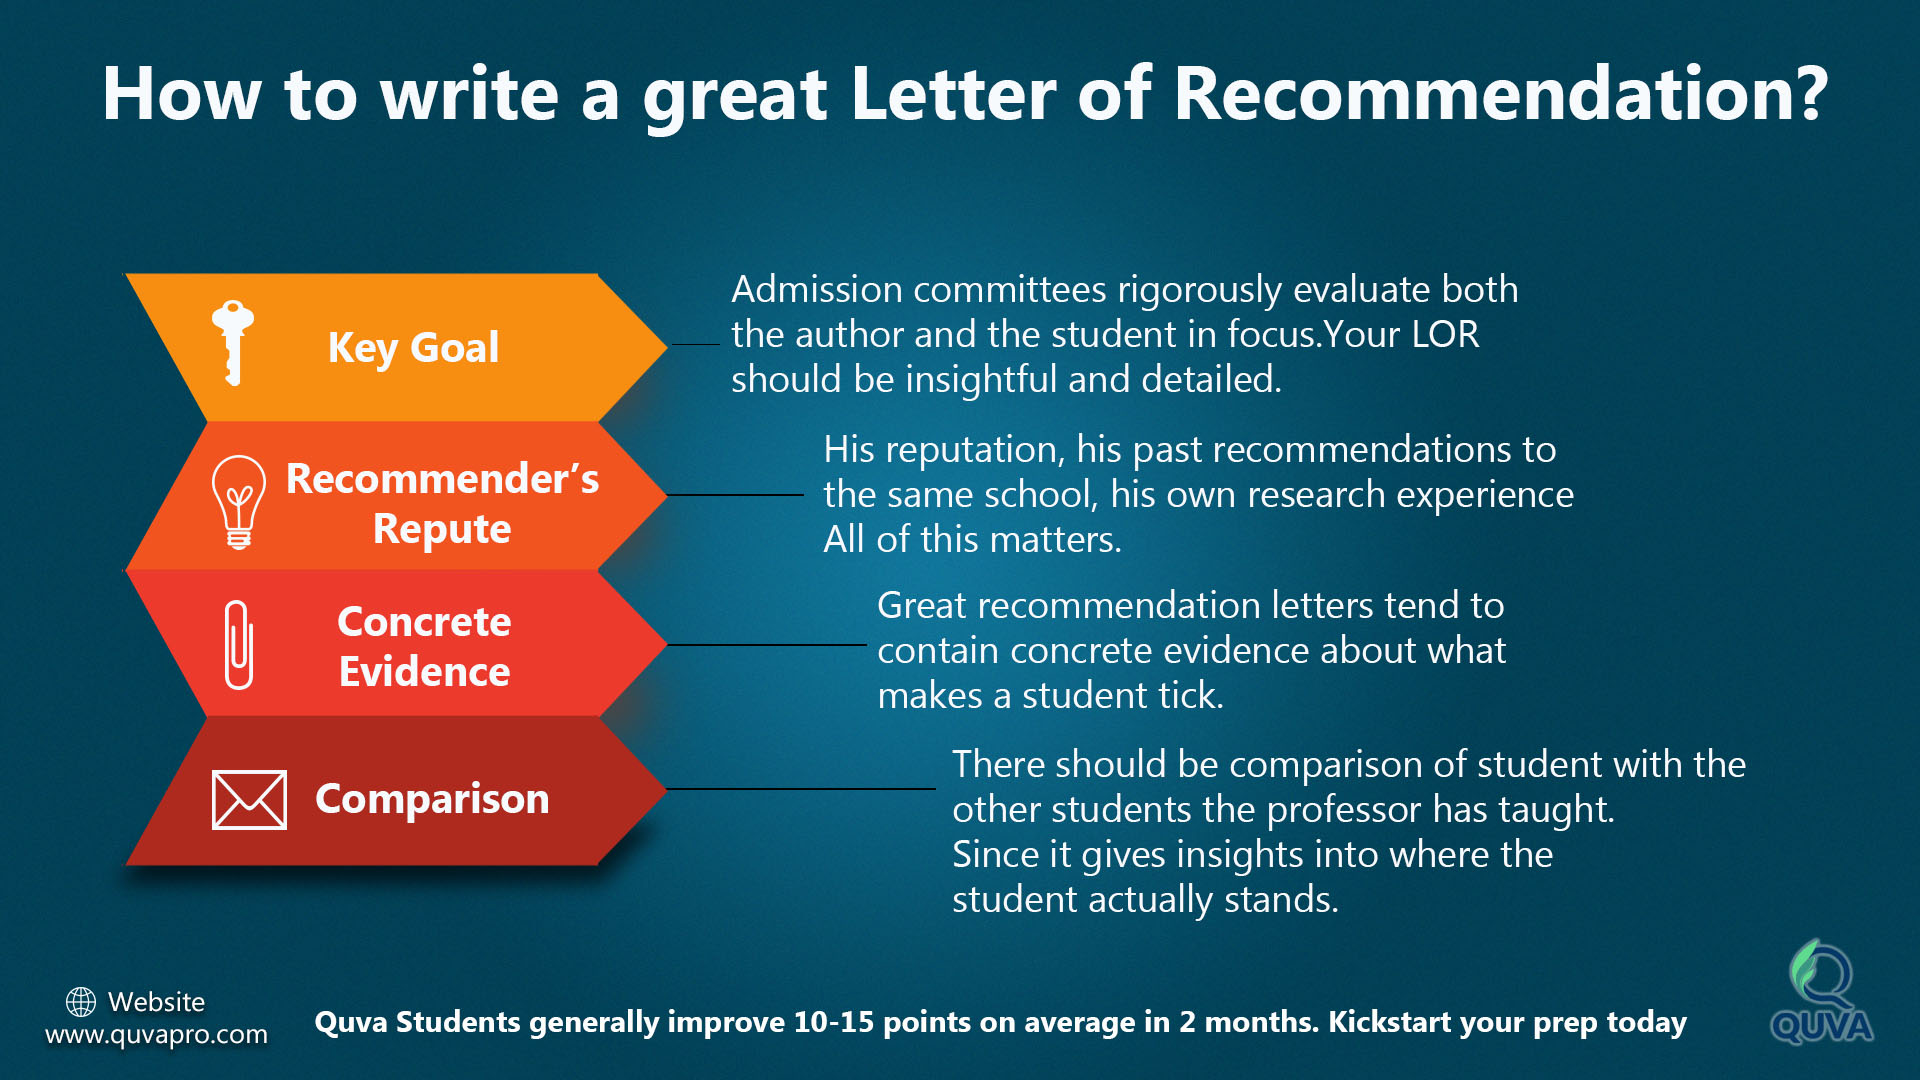 how to write a great letter of recommendation